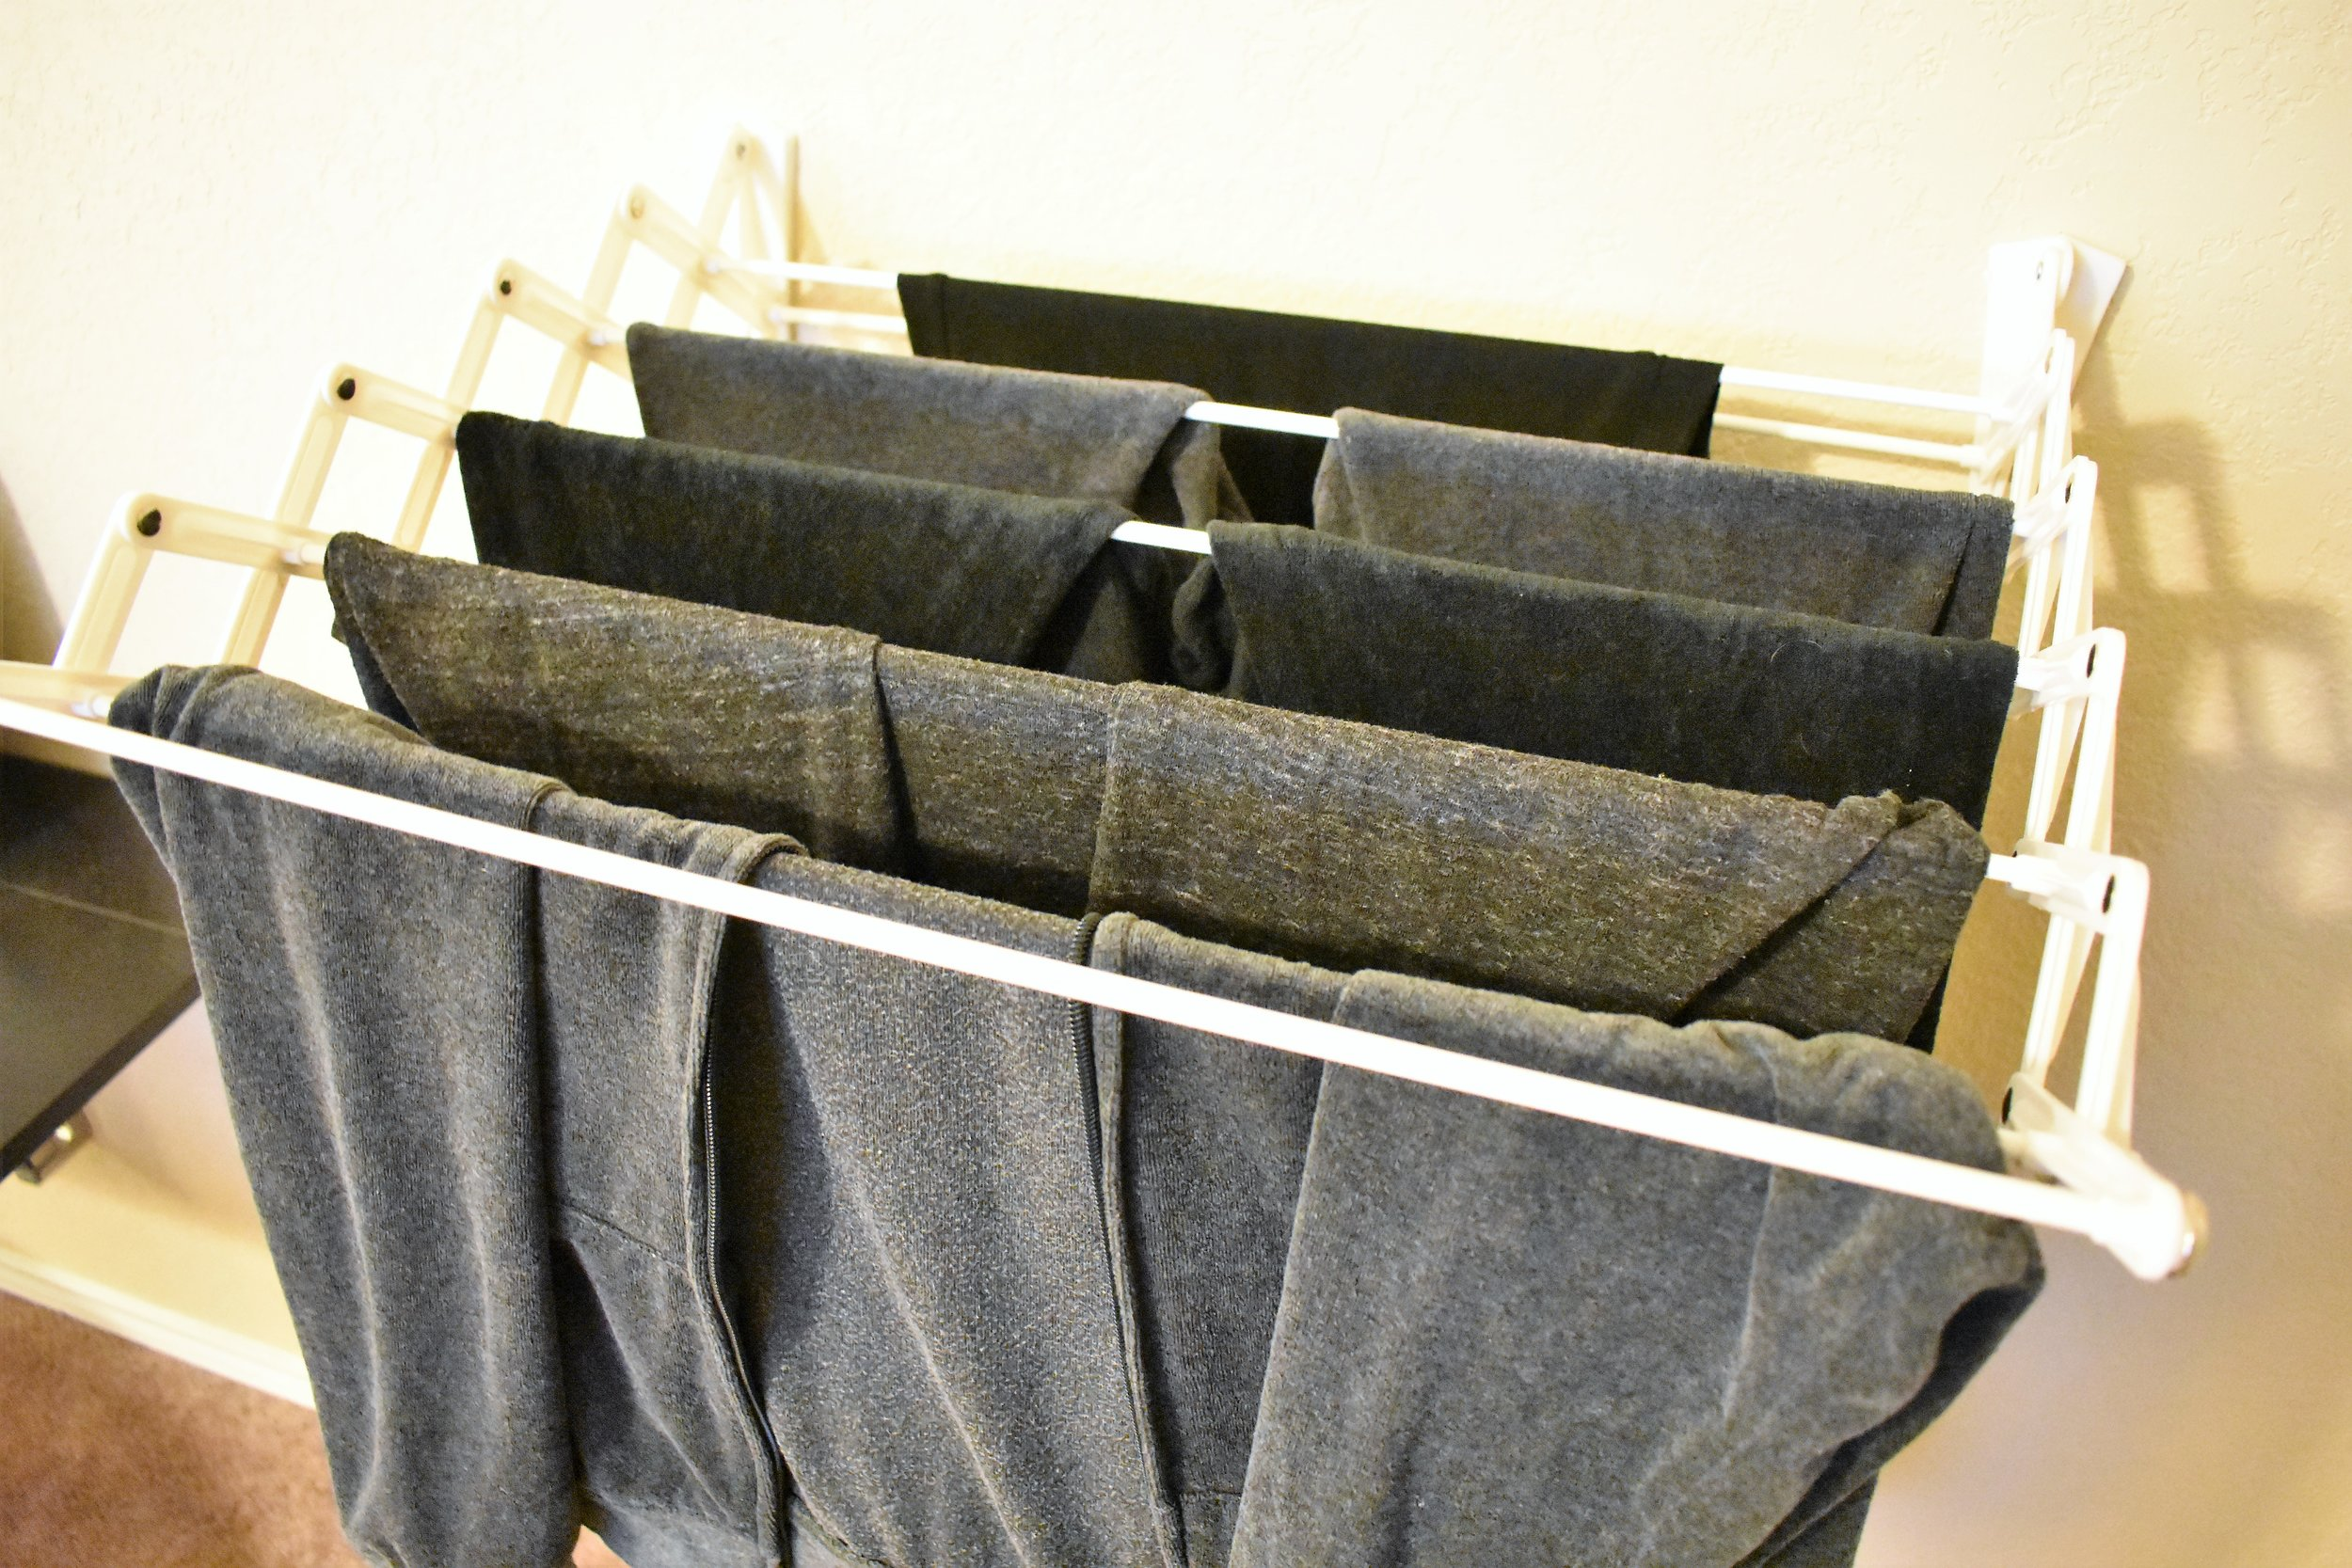 clothes drying rack - laundry room storage and organization